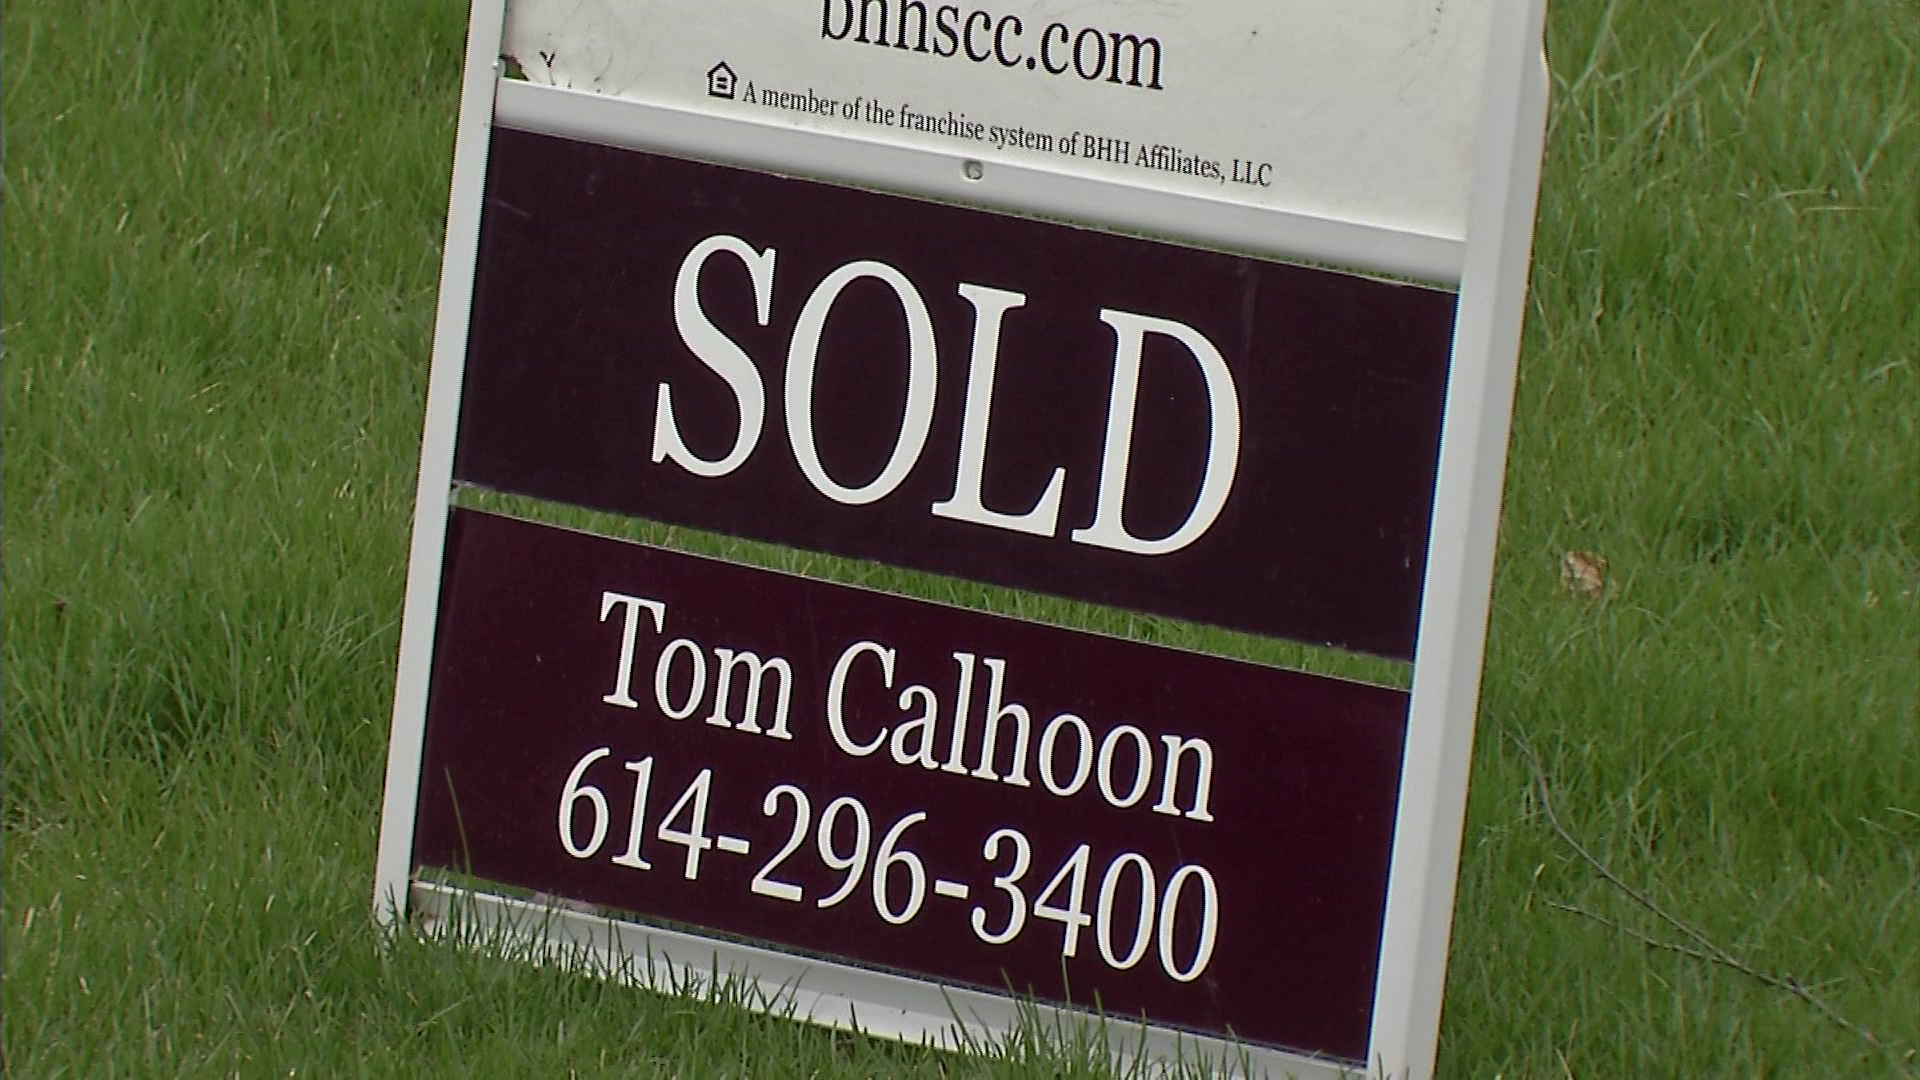 Columbus named top real estate market in the country